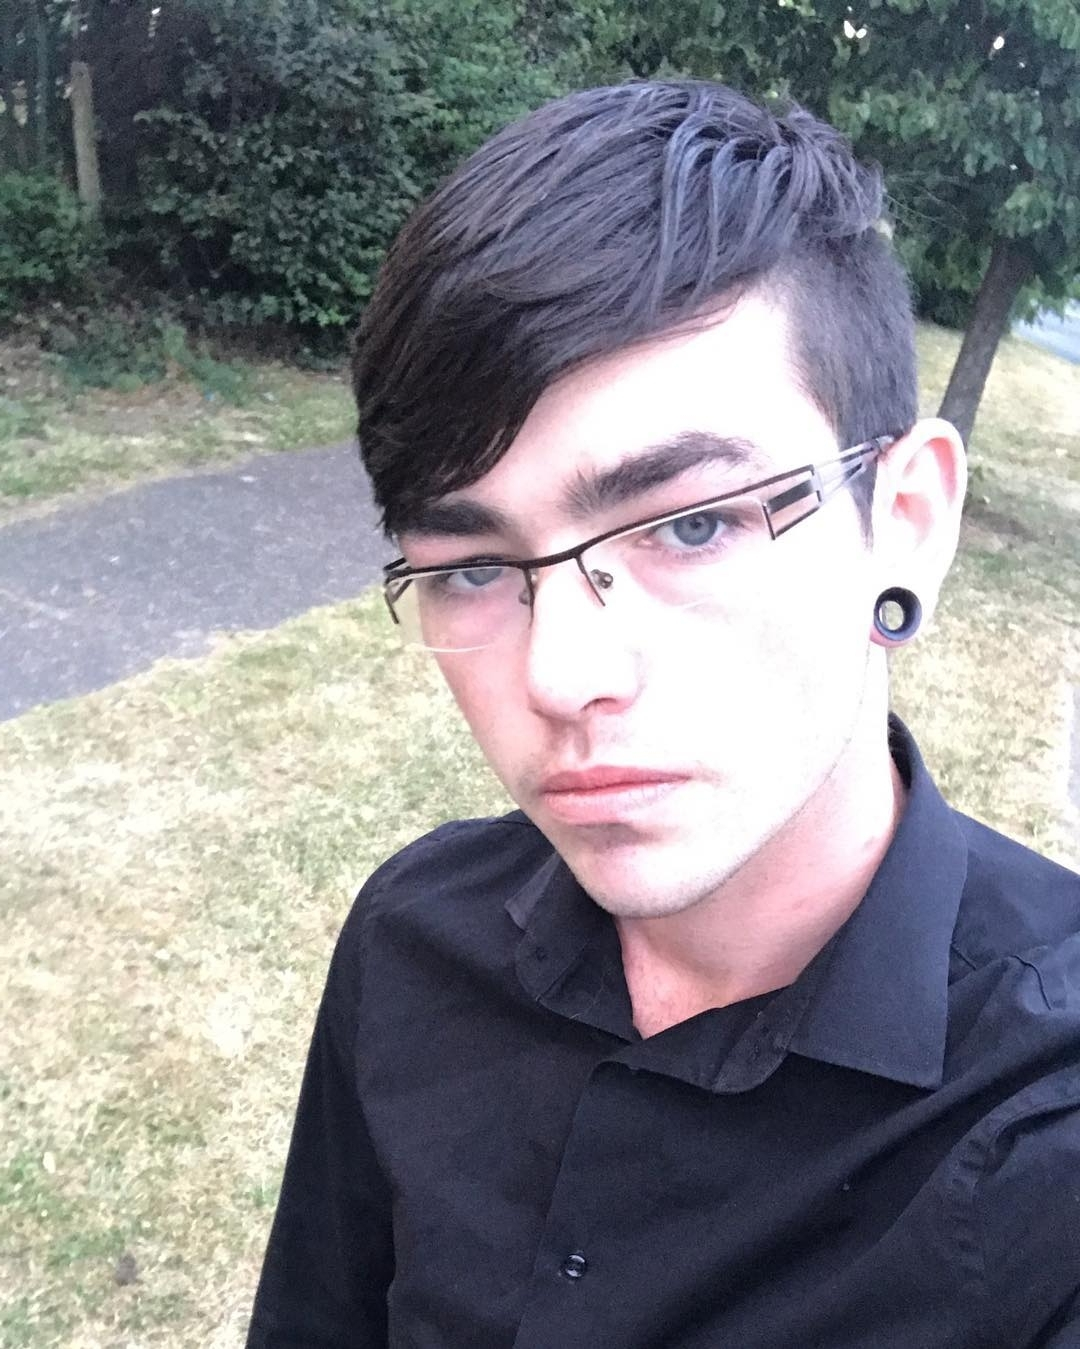 155 Mind Blowing Emo Hairstyle Ideas For Every Emo Fan! Medium Length Emo Hairstyles For Guys